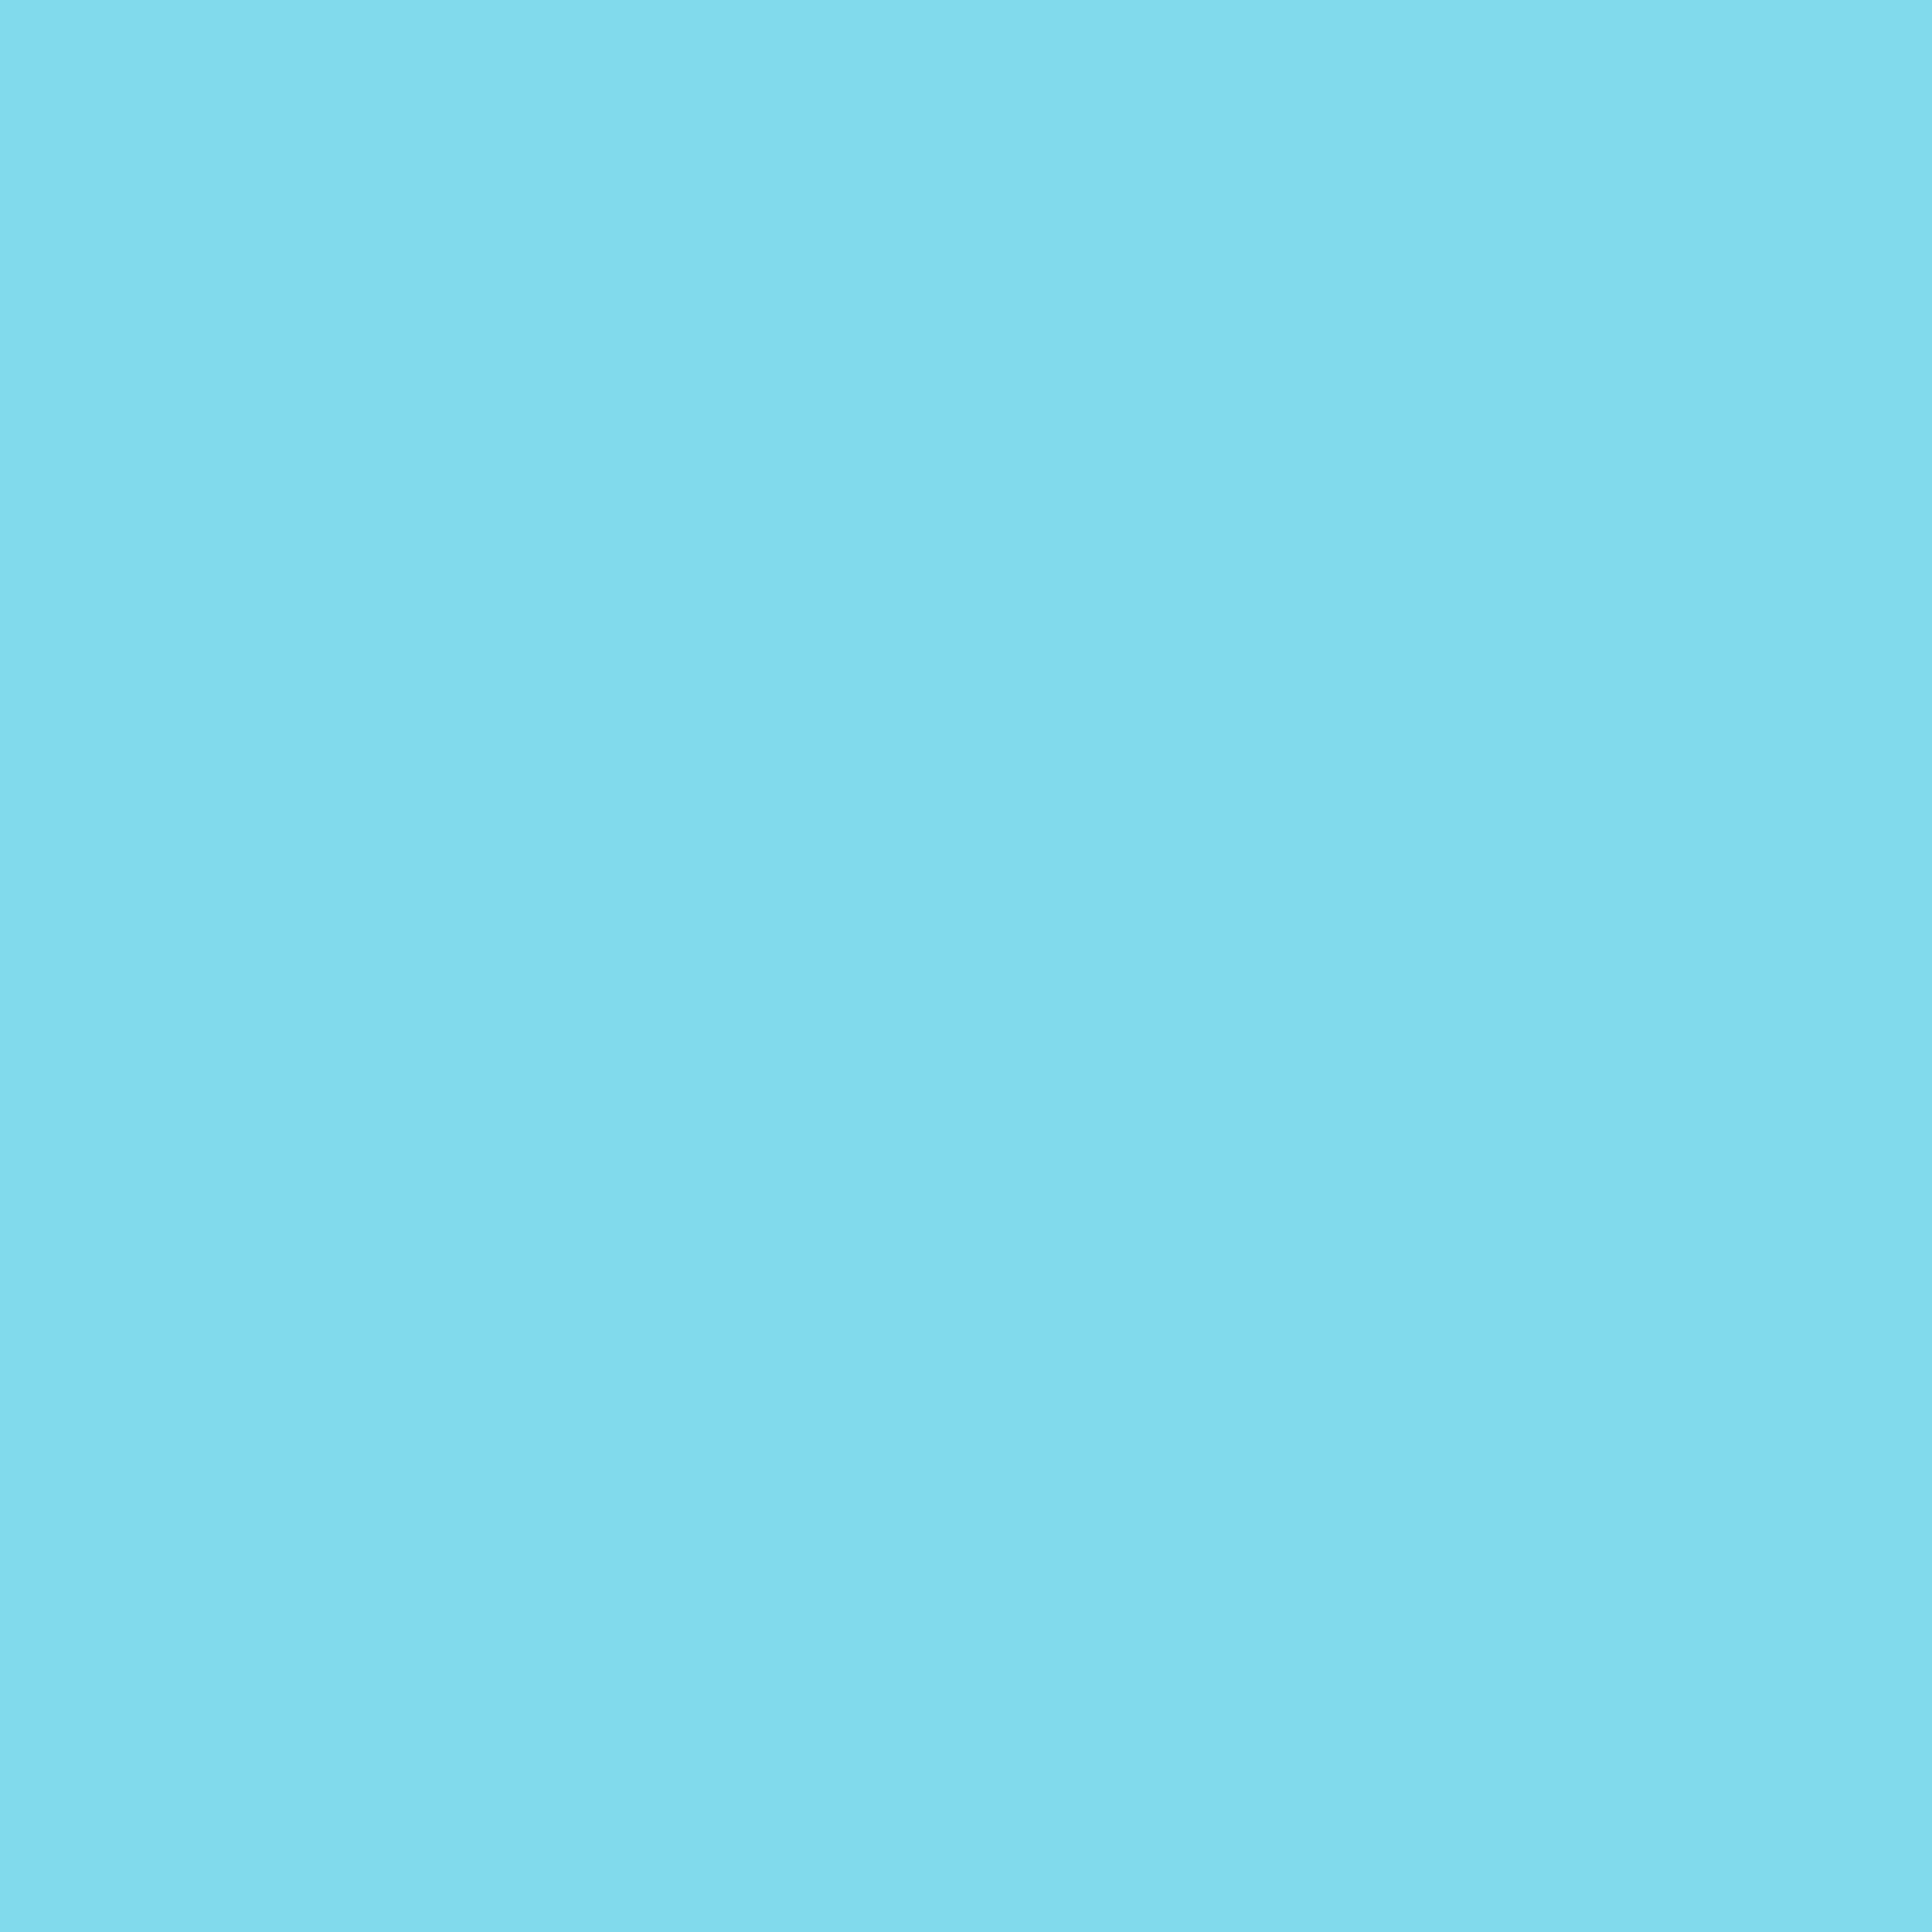 3600x3600 Medium Sky Blue Solid Color Background